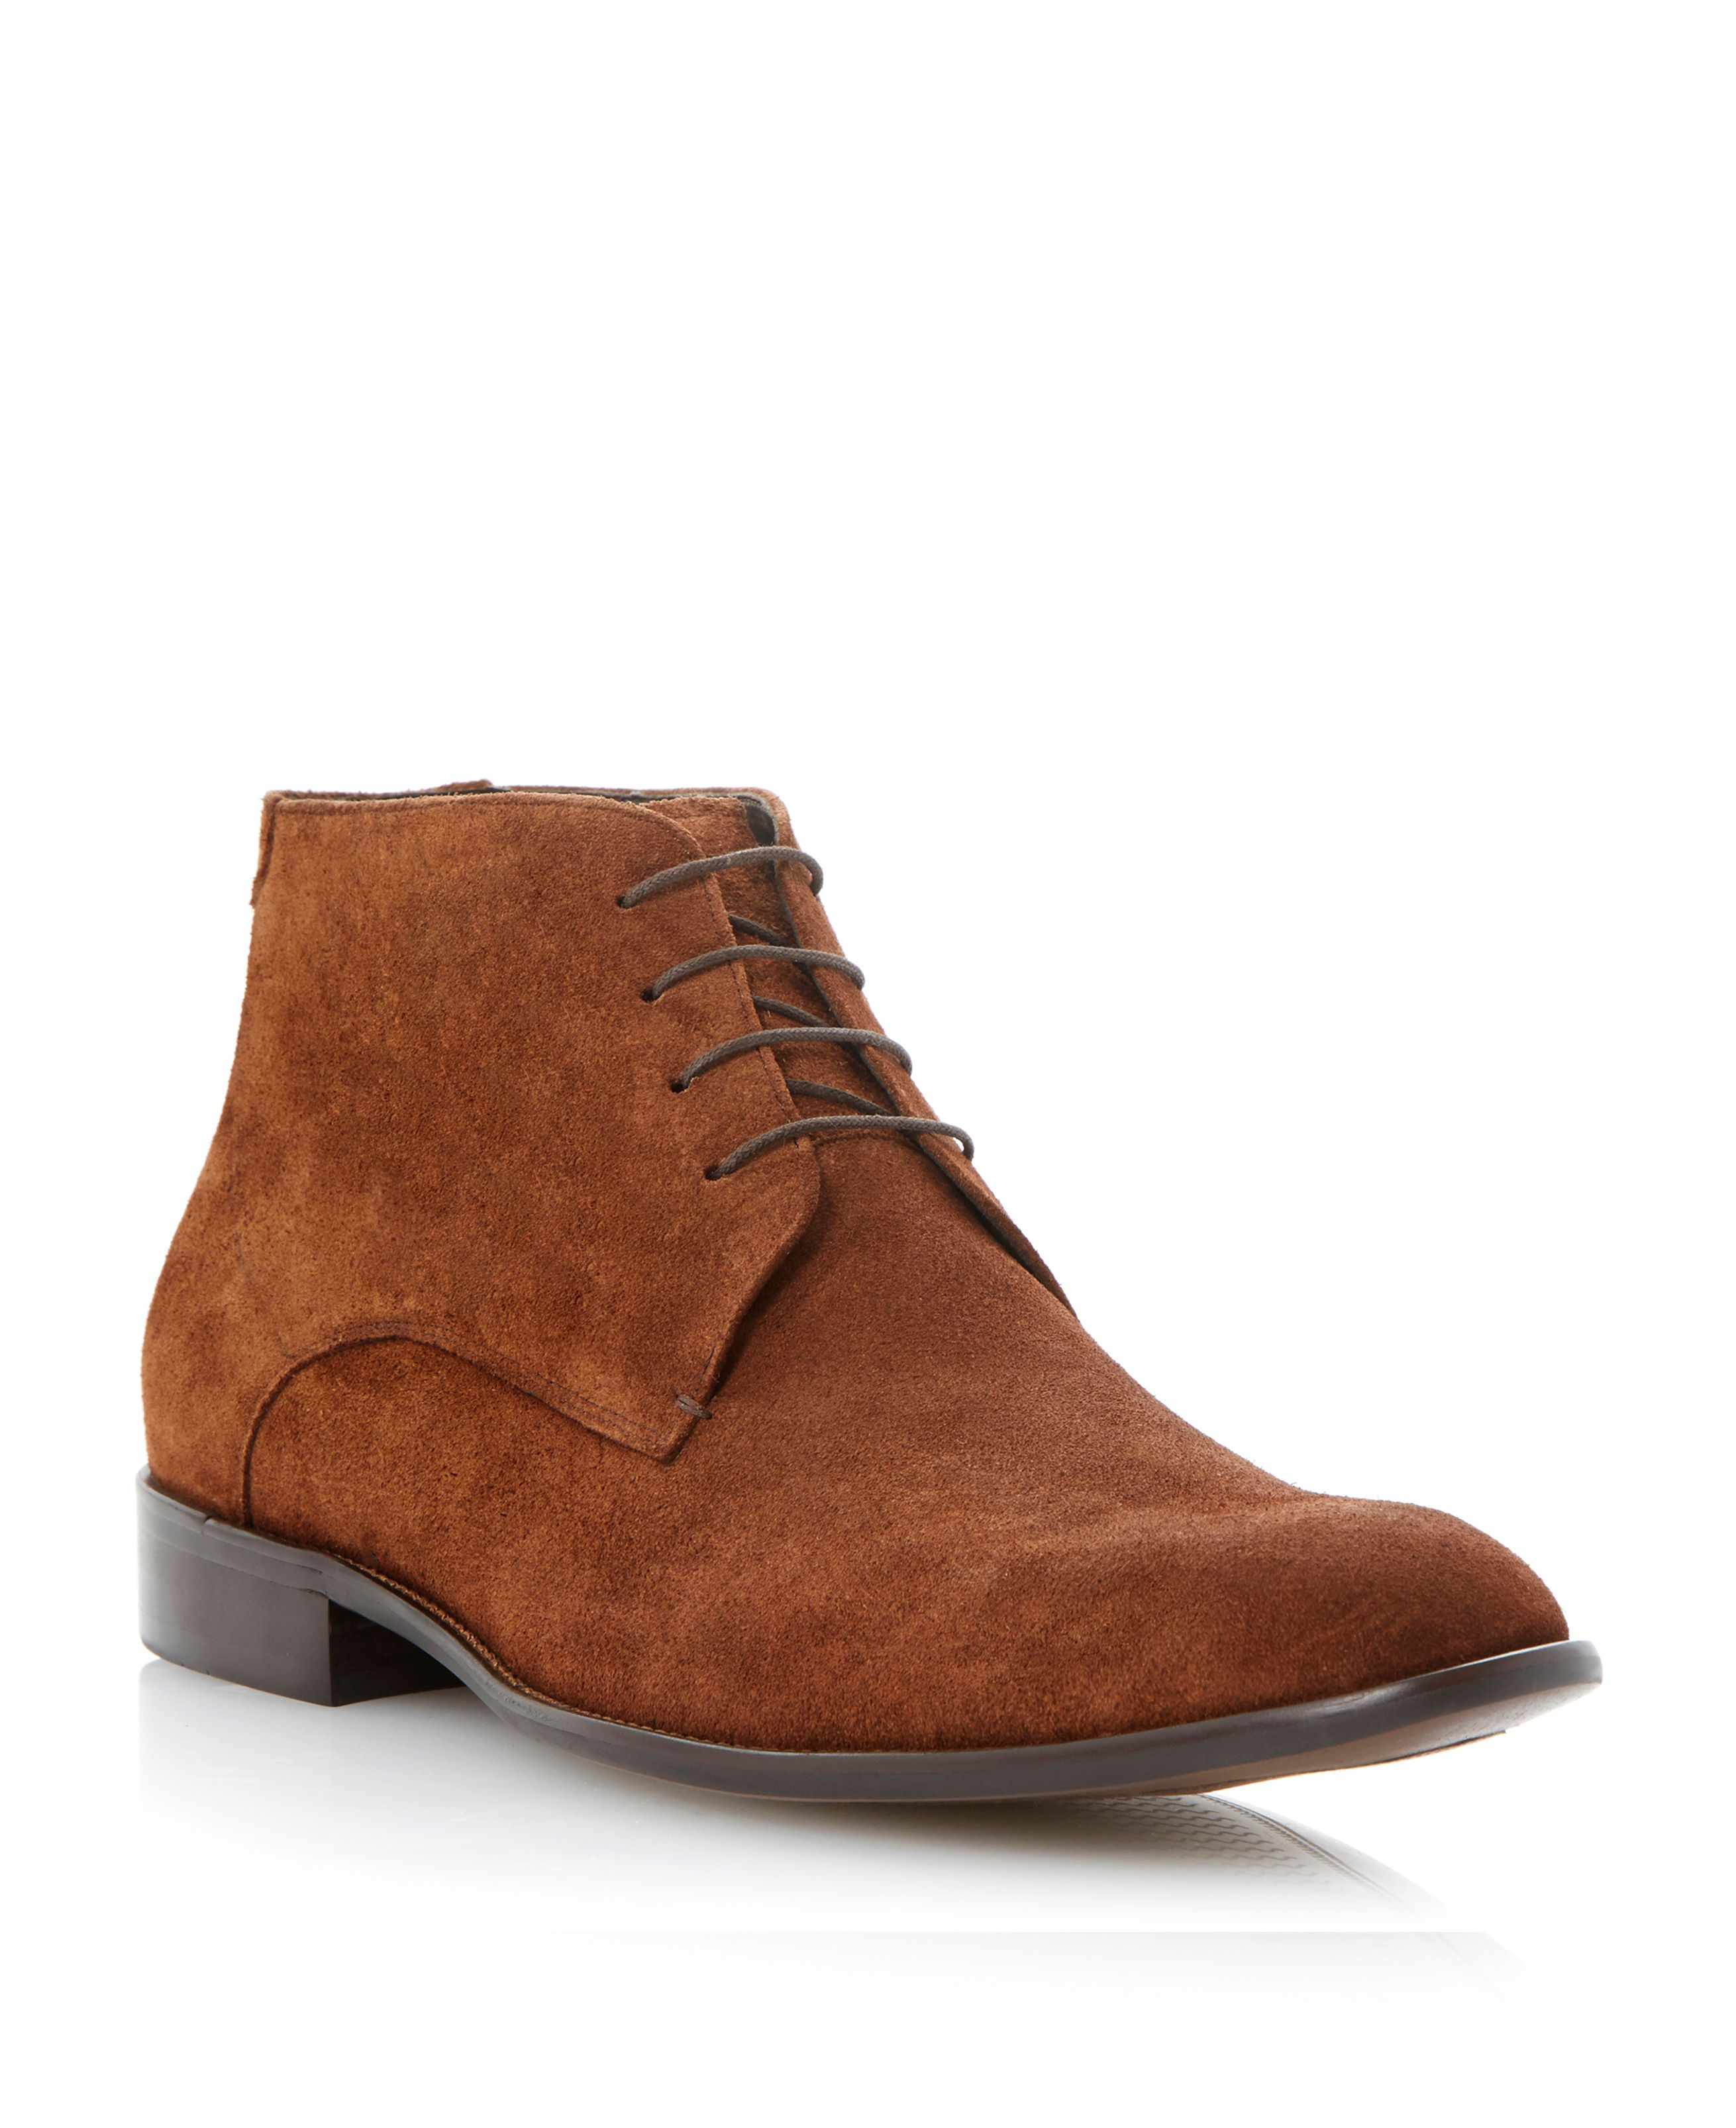 Monte carlo swung toe lace up boot